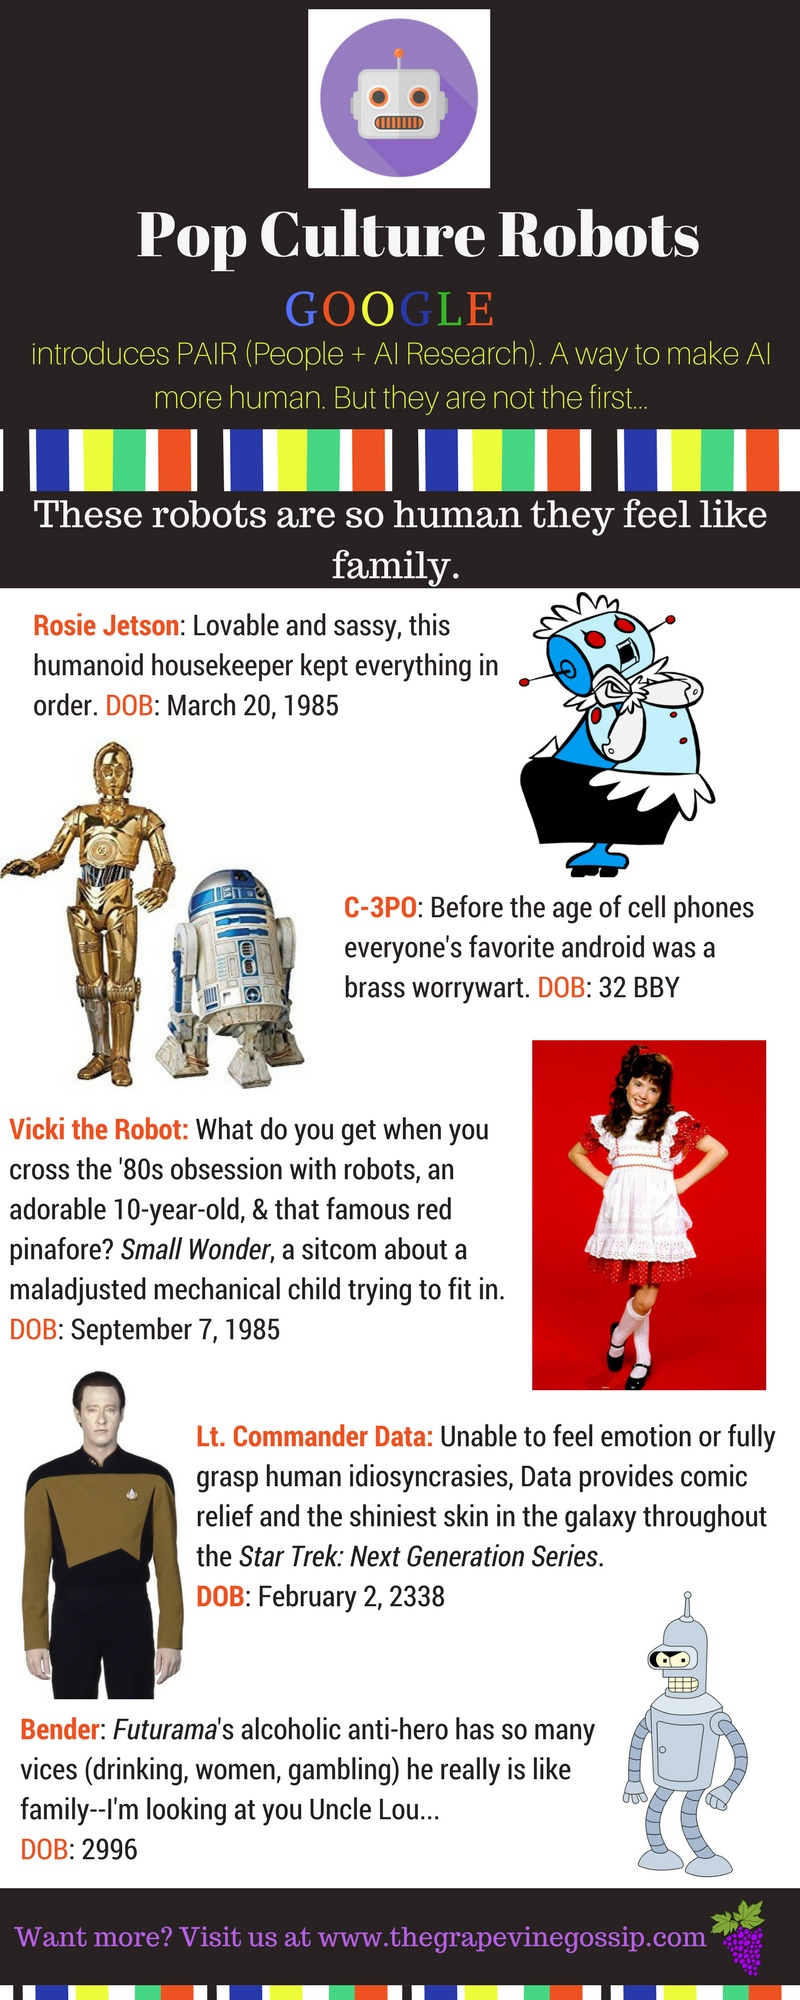 Pop Culture Robots